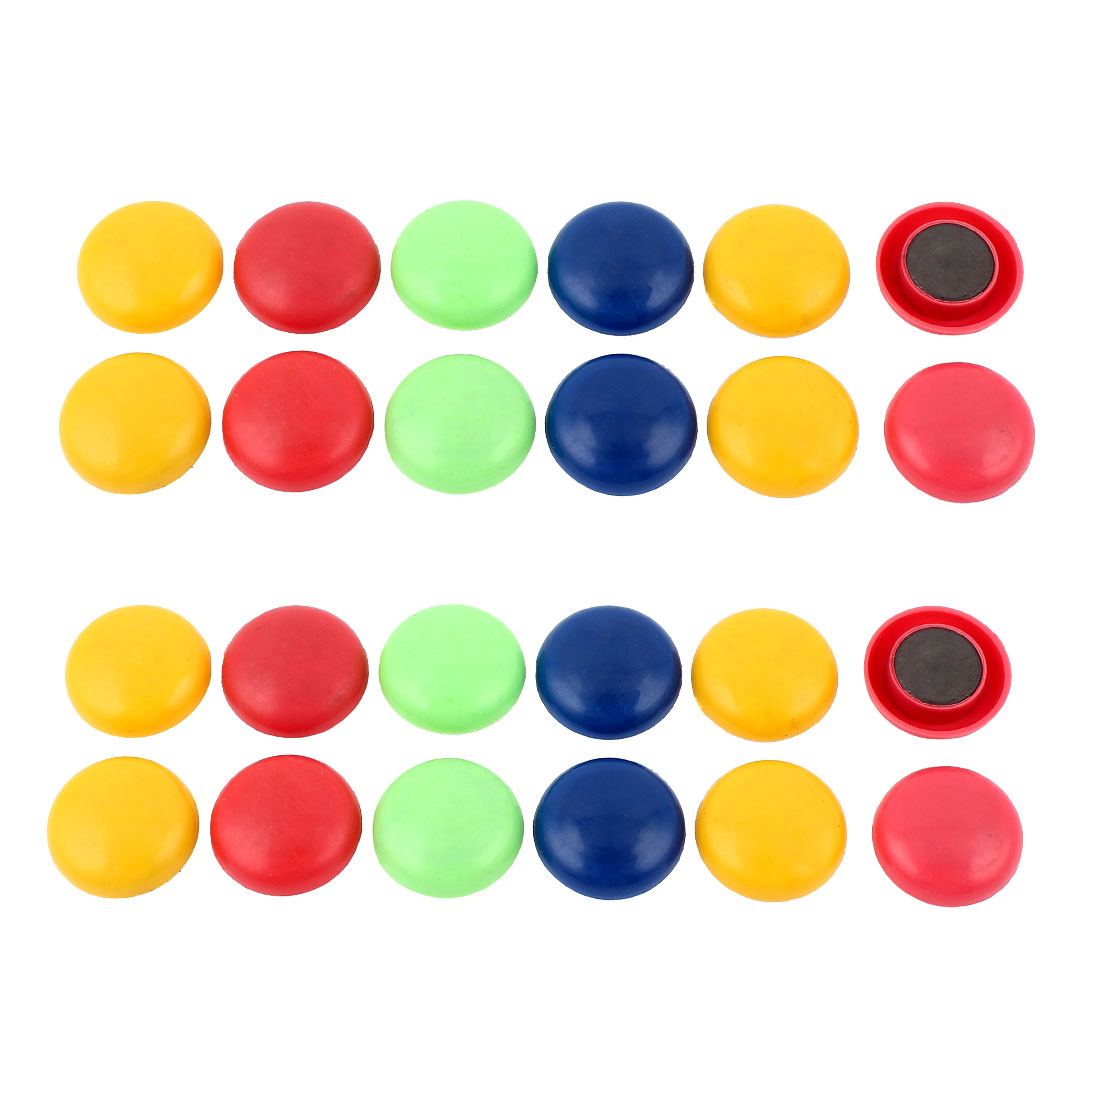 2 Set Multicolor Plastic 3cm Dia Cover Washing Machine Fridge Magnets